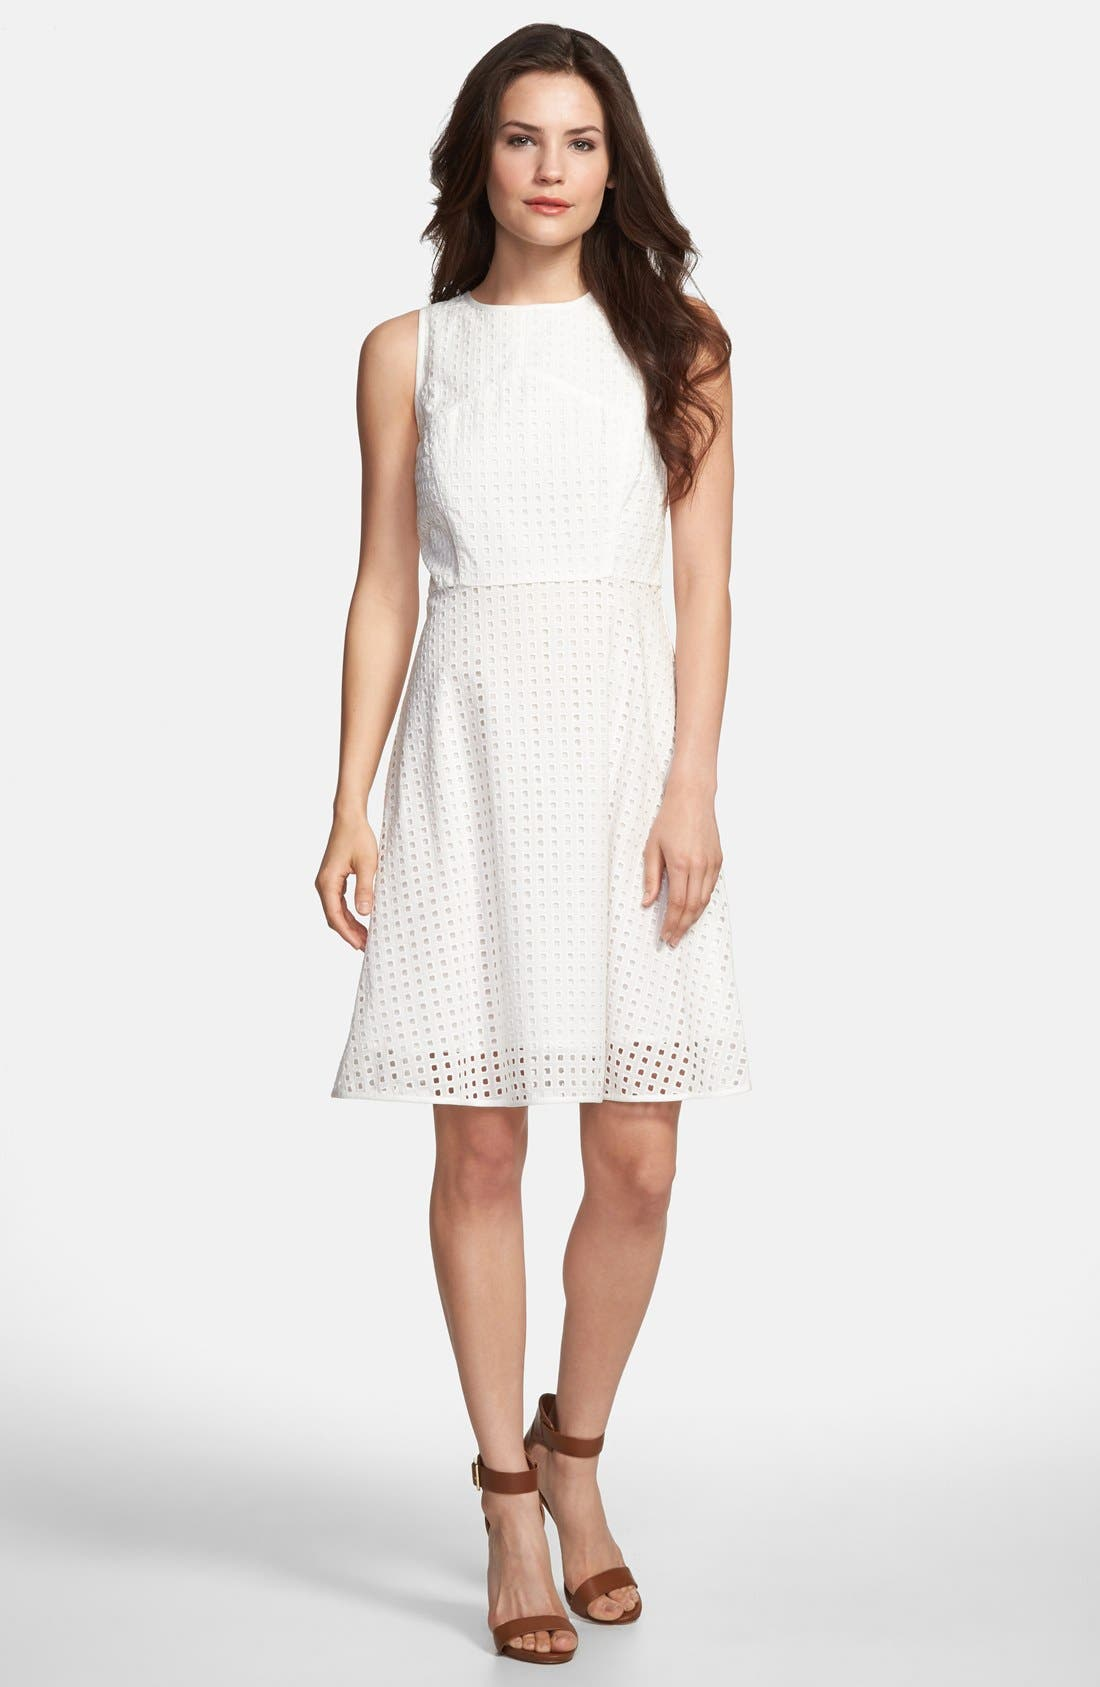 Alternate Image 1 Selected - Vince Camuto Square Eyelet Cotton Fit & Flare Dress